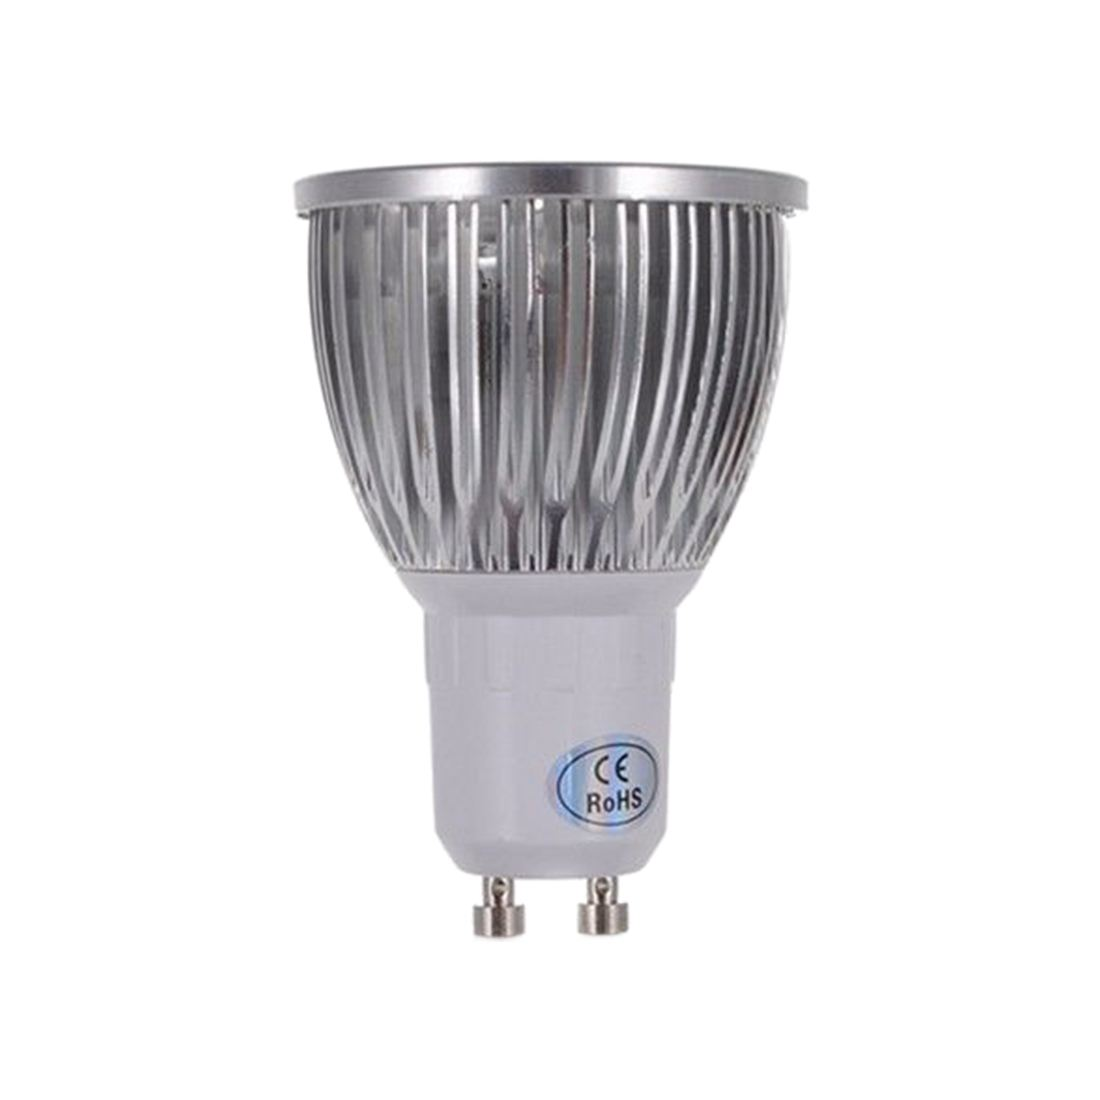 Pure / Warm LED Light Bulb - Warm White Base Power: GU10-8W-4LED- 220V - 4